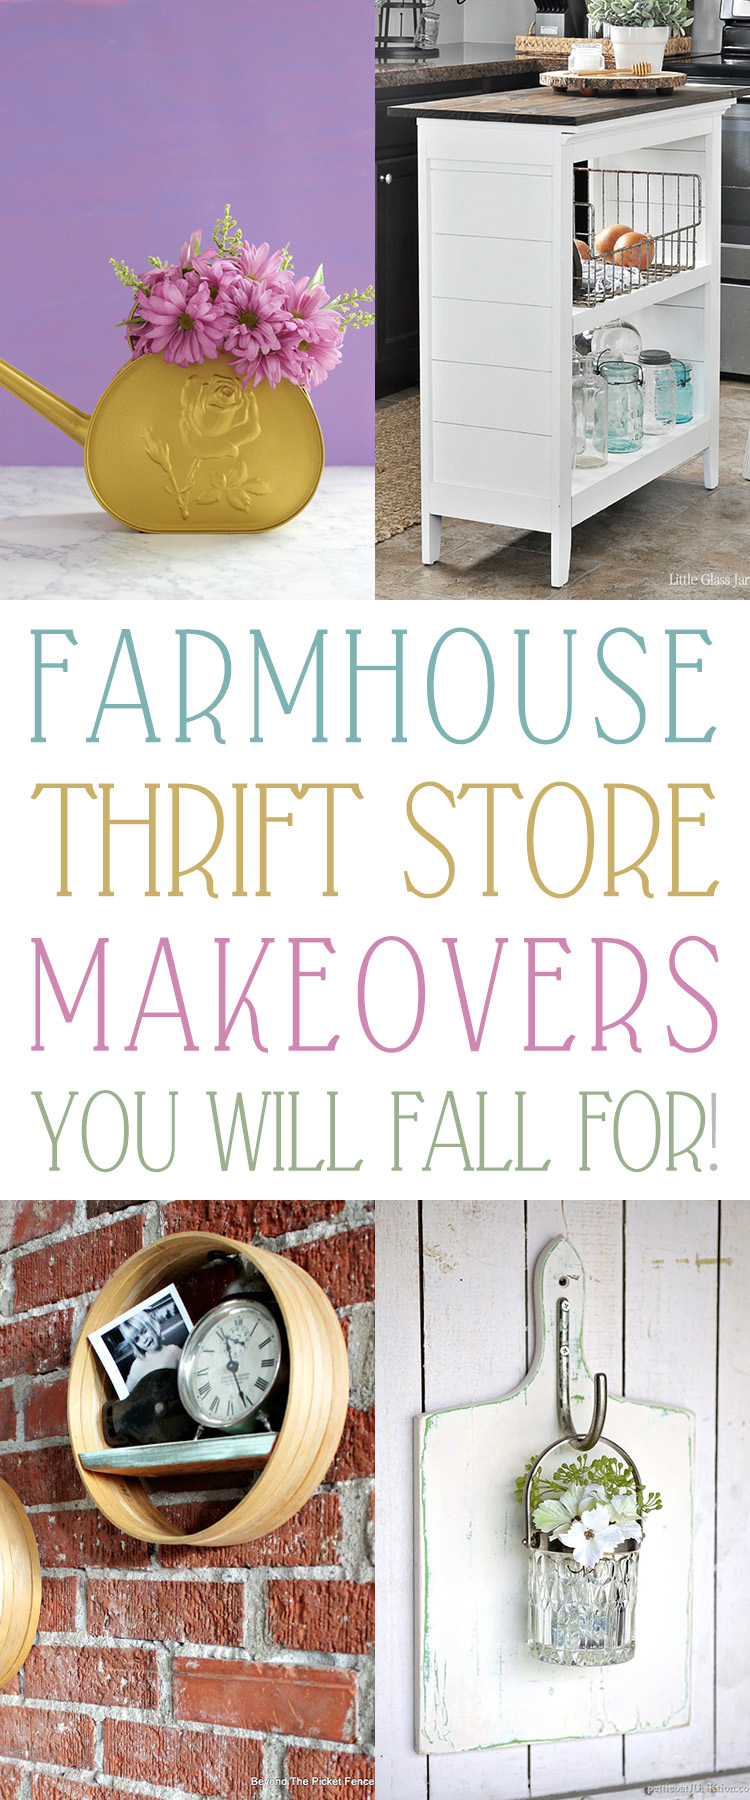 These thrift store makeovers make great additions to any farmhouse.